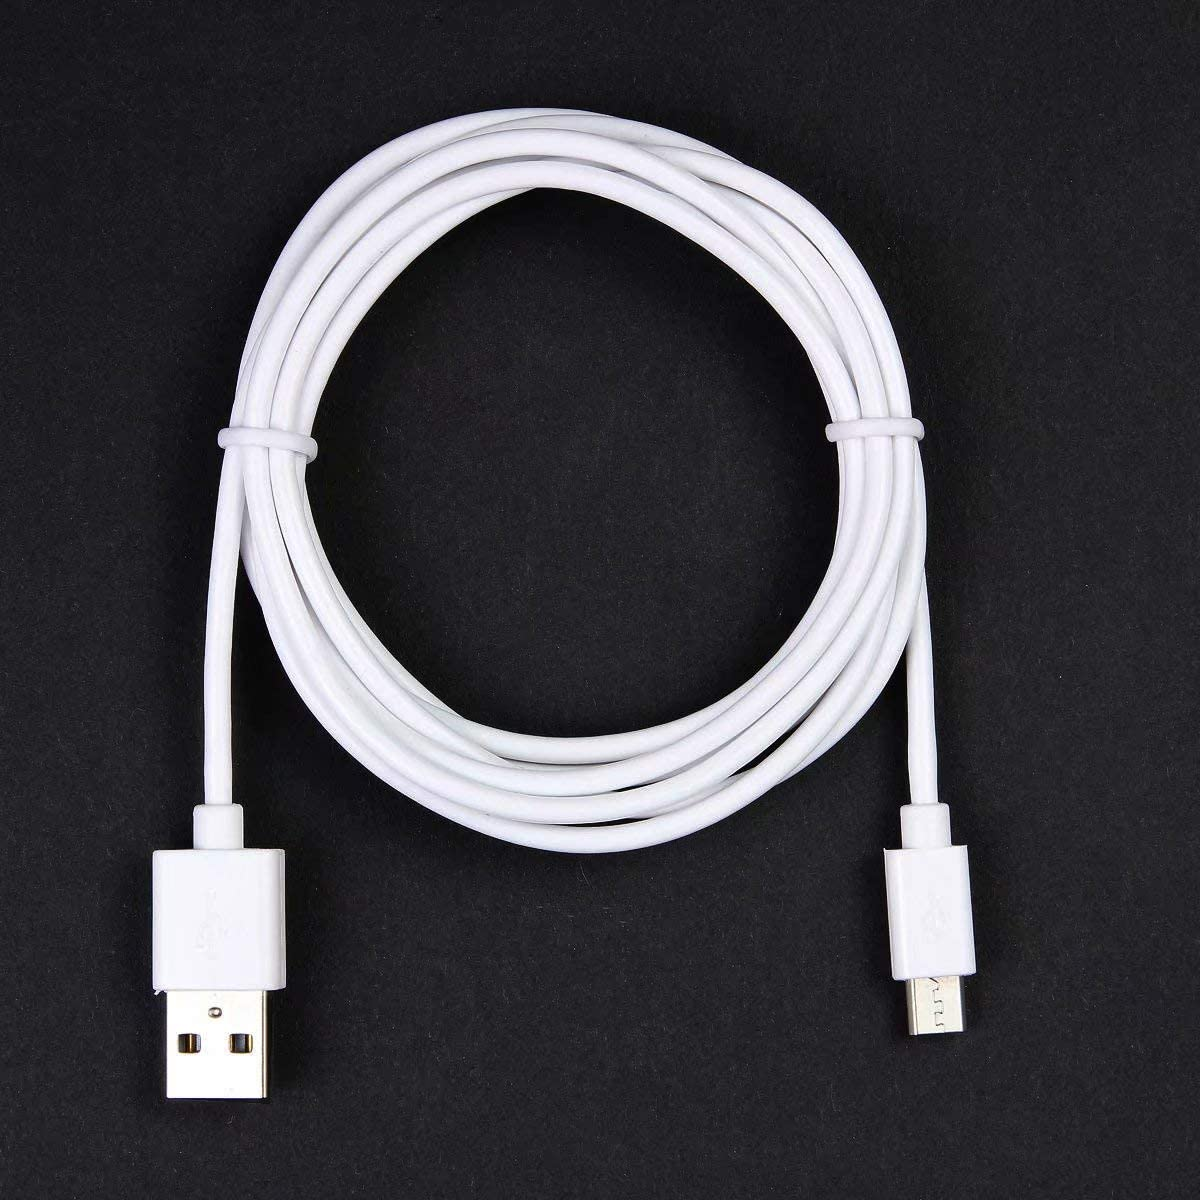 White 6 Feet POWE-Tech USB Charger Cord Data Cable Lead for LG V10 Escape 2 C70 H443 H445 Phone